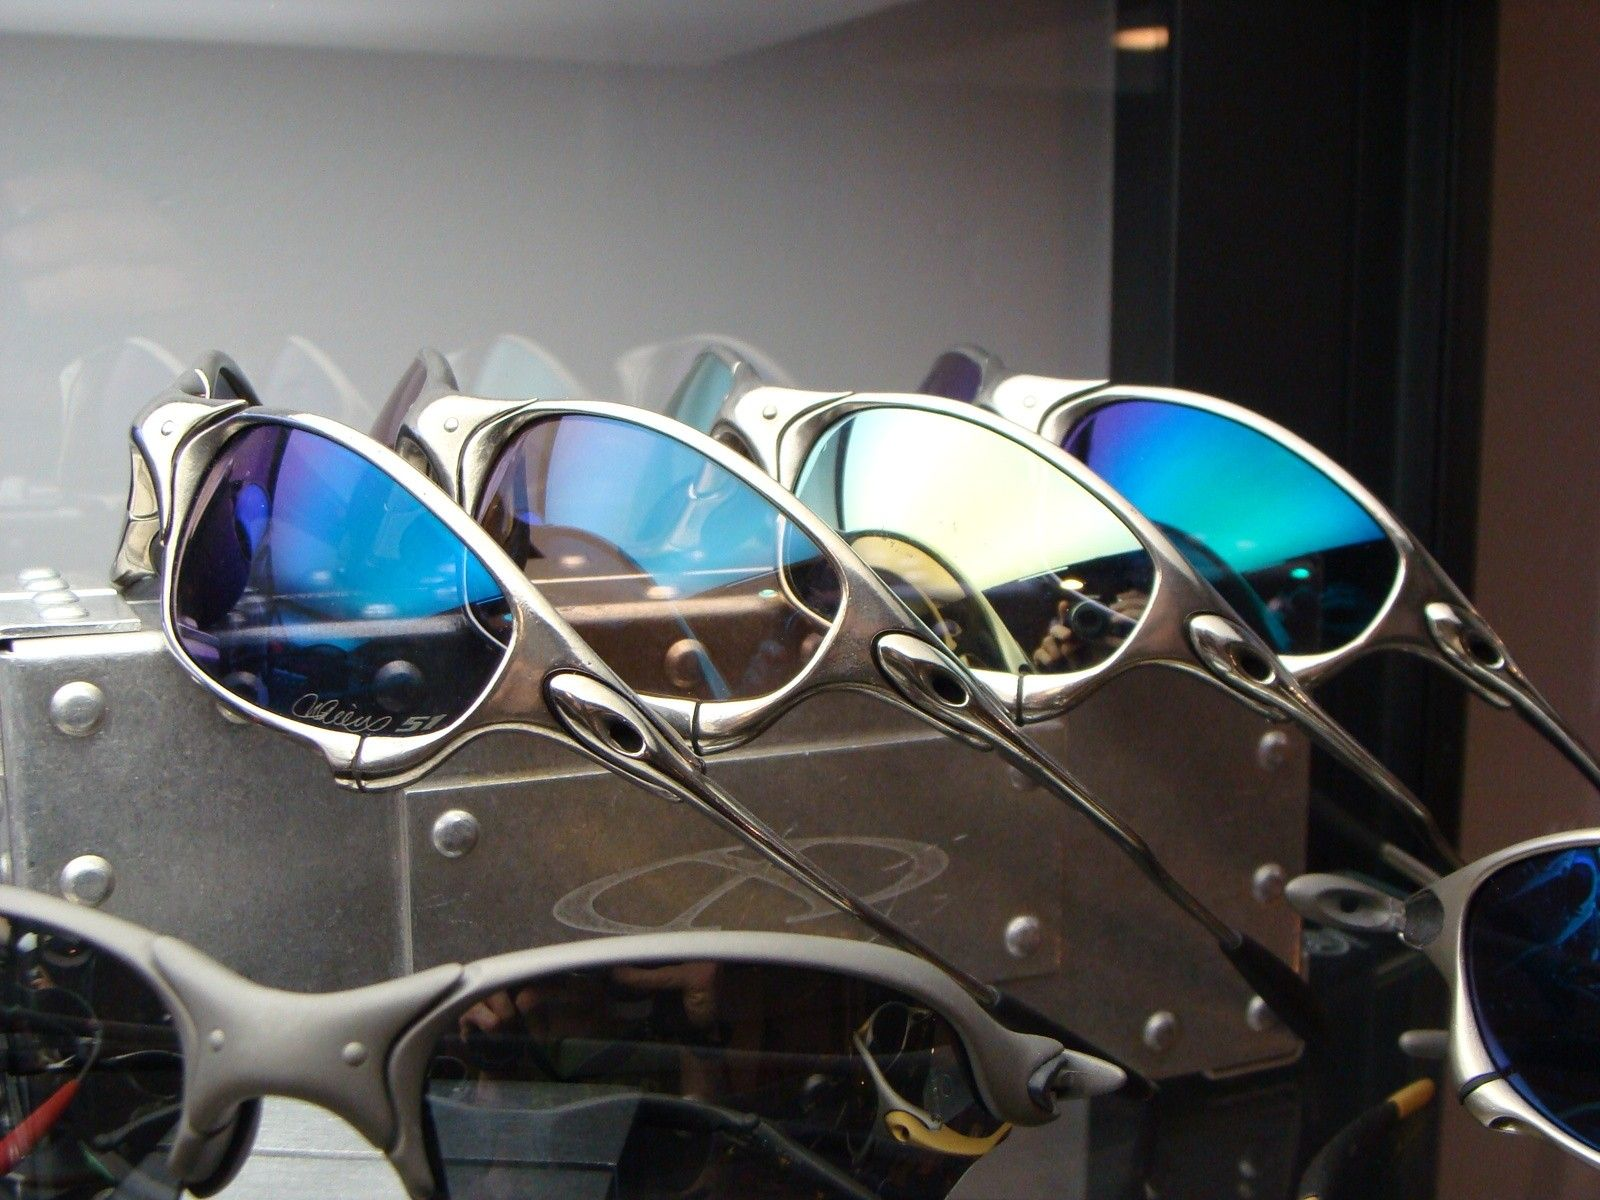 Preview Of My Oakley Collection - DSC07617.JPG